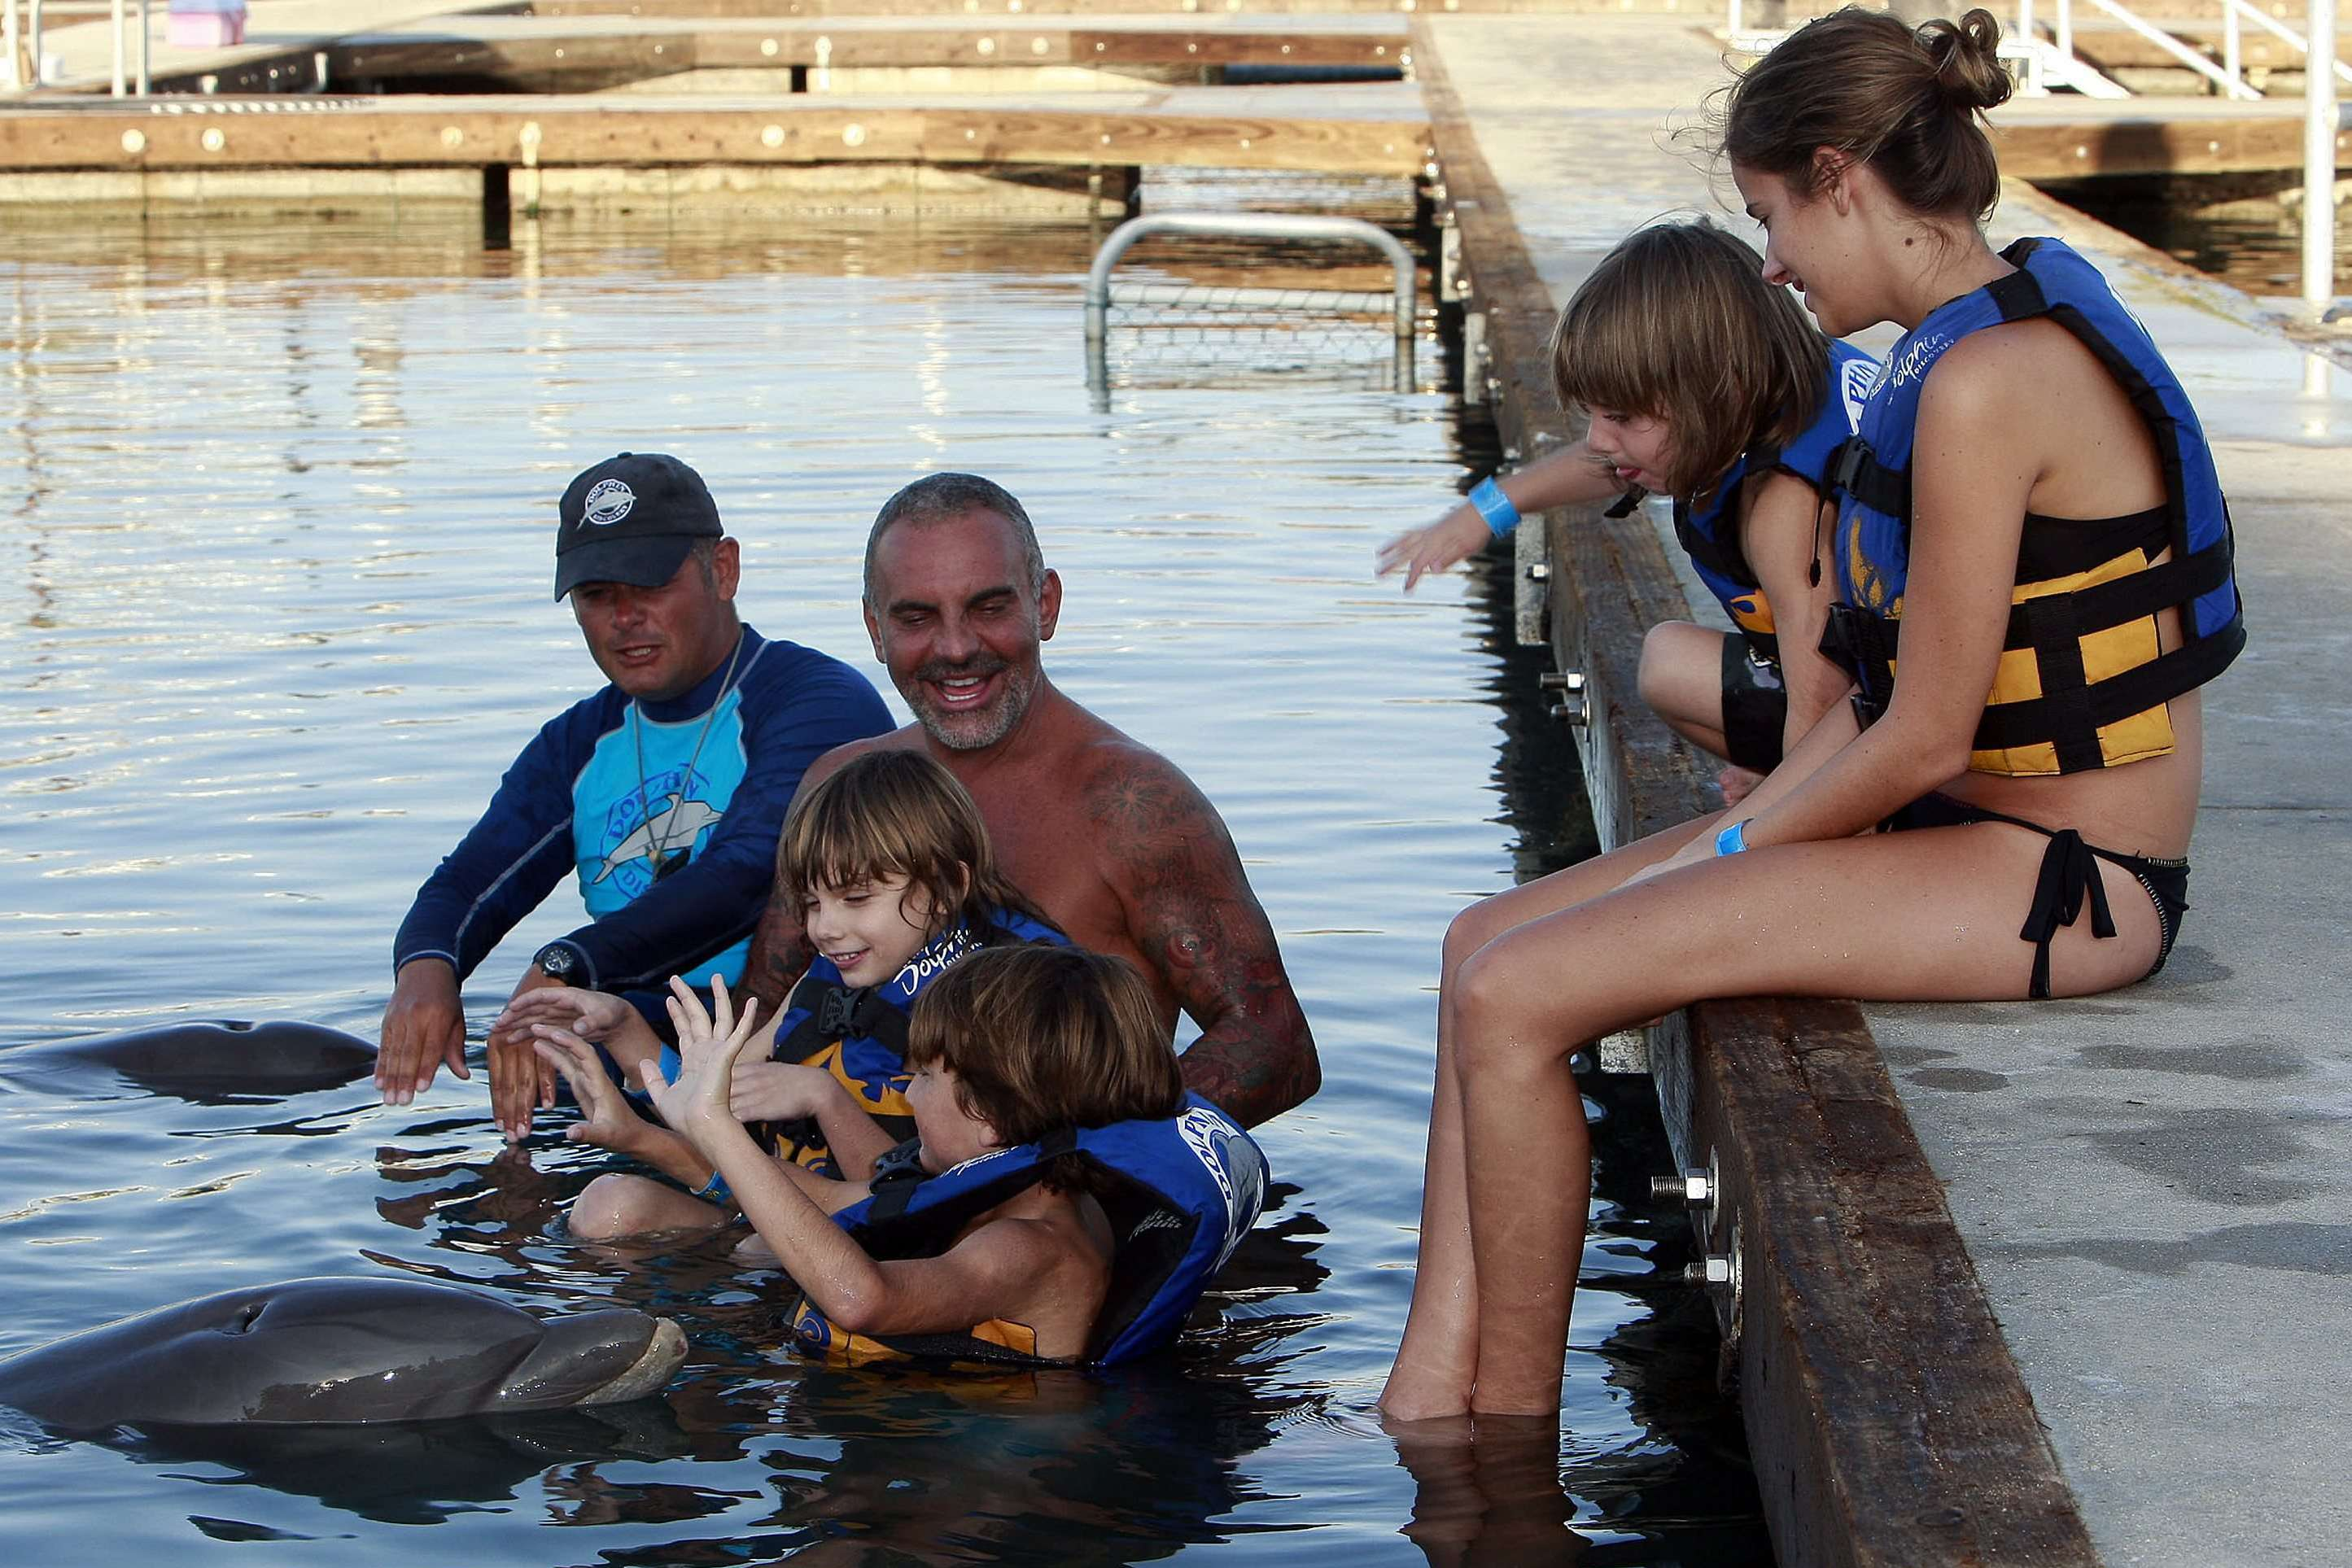 Fashion designer Christian Audigier and Nathalie Sorensen celebrate Thanksgiving with his children, Dylan, Rocco and Vito, on a trip to see dolphins in the new marina of Puerto Los Cabos. Cabo San Lucas, Mexico - 24.11.11 Credit: (Mandatory): BAC/WENN.com/audigier_dolphin_251111.Christian_Audigier_14_/1111252310